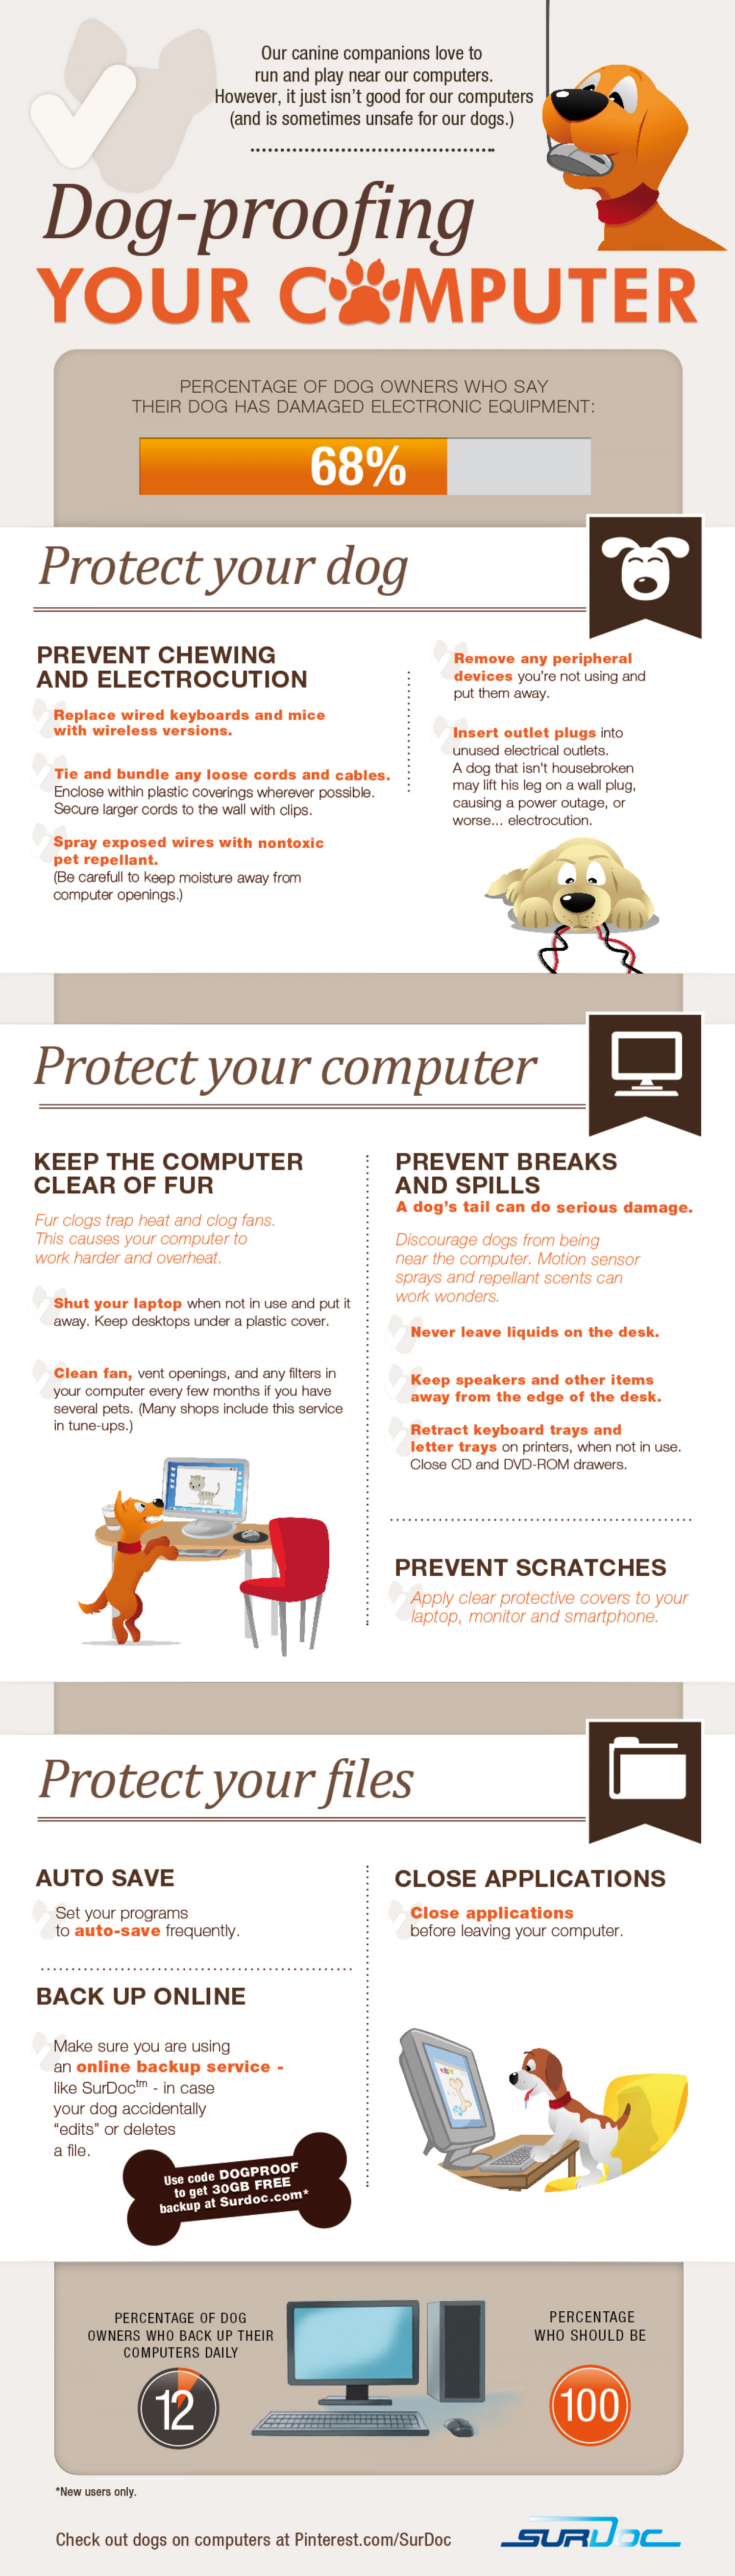 Dog-Proofing Your Computer Infographic